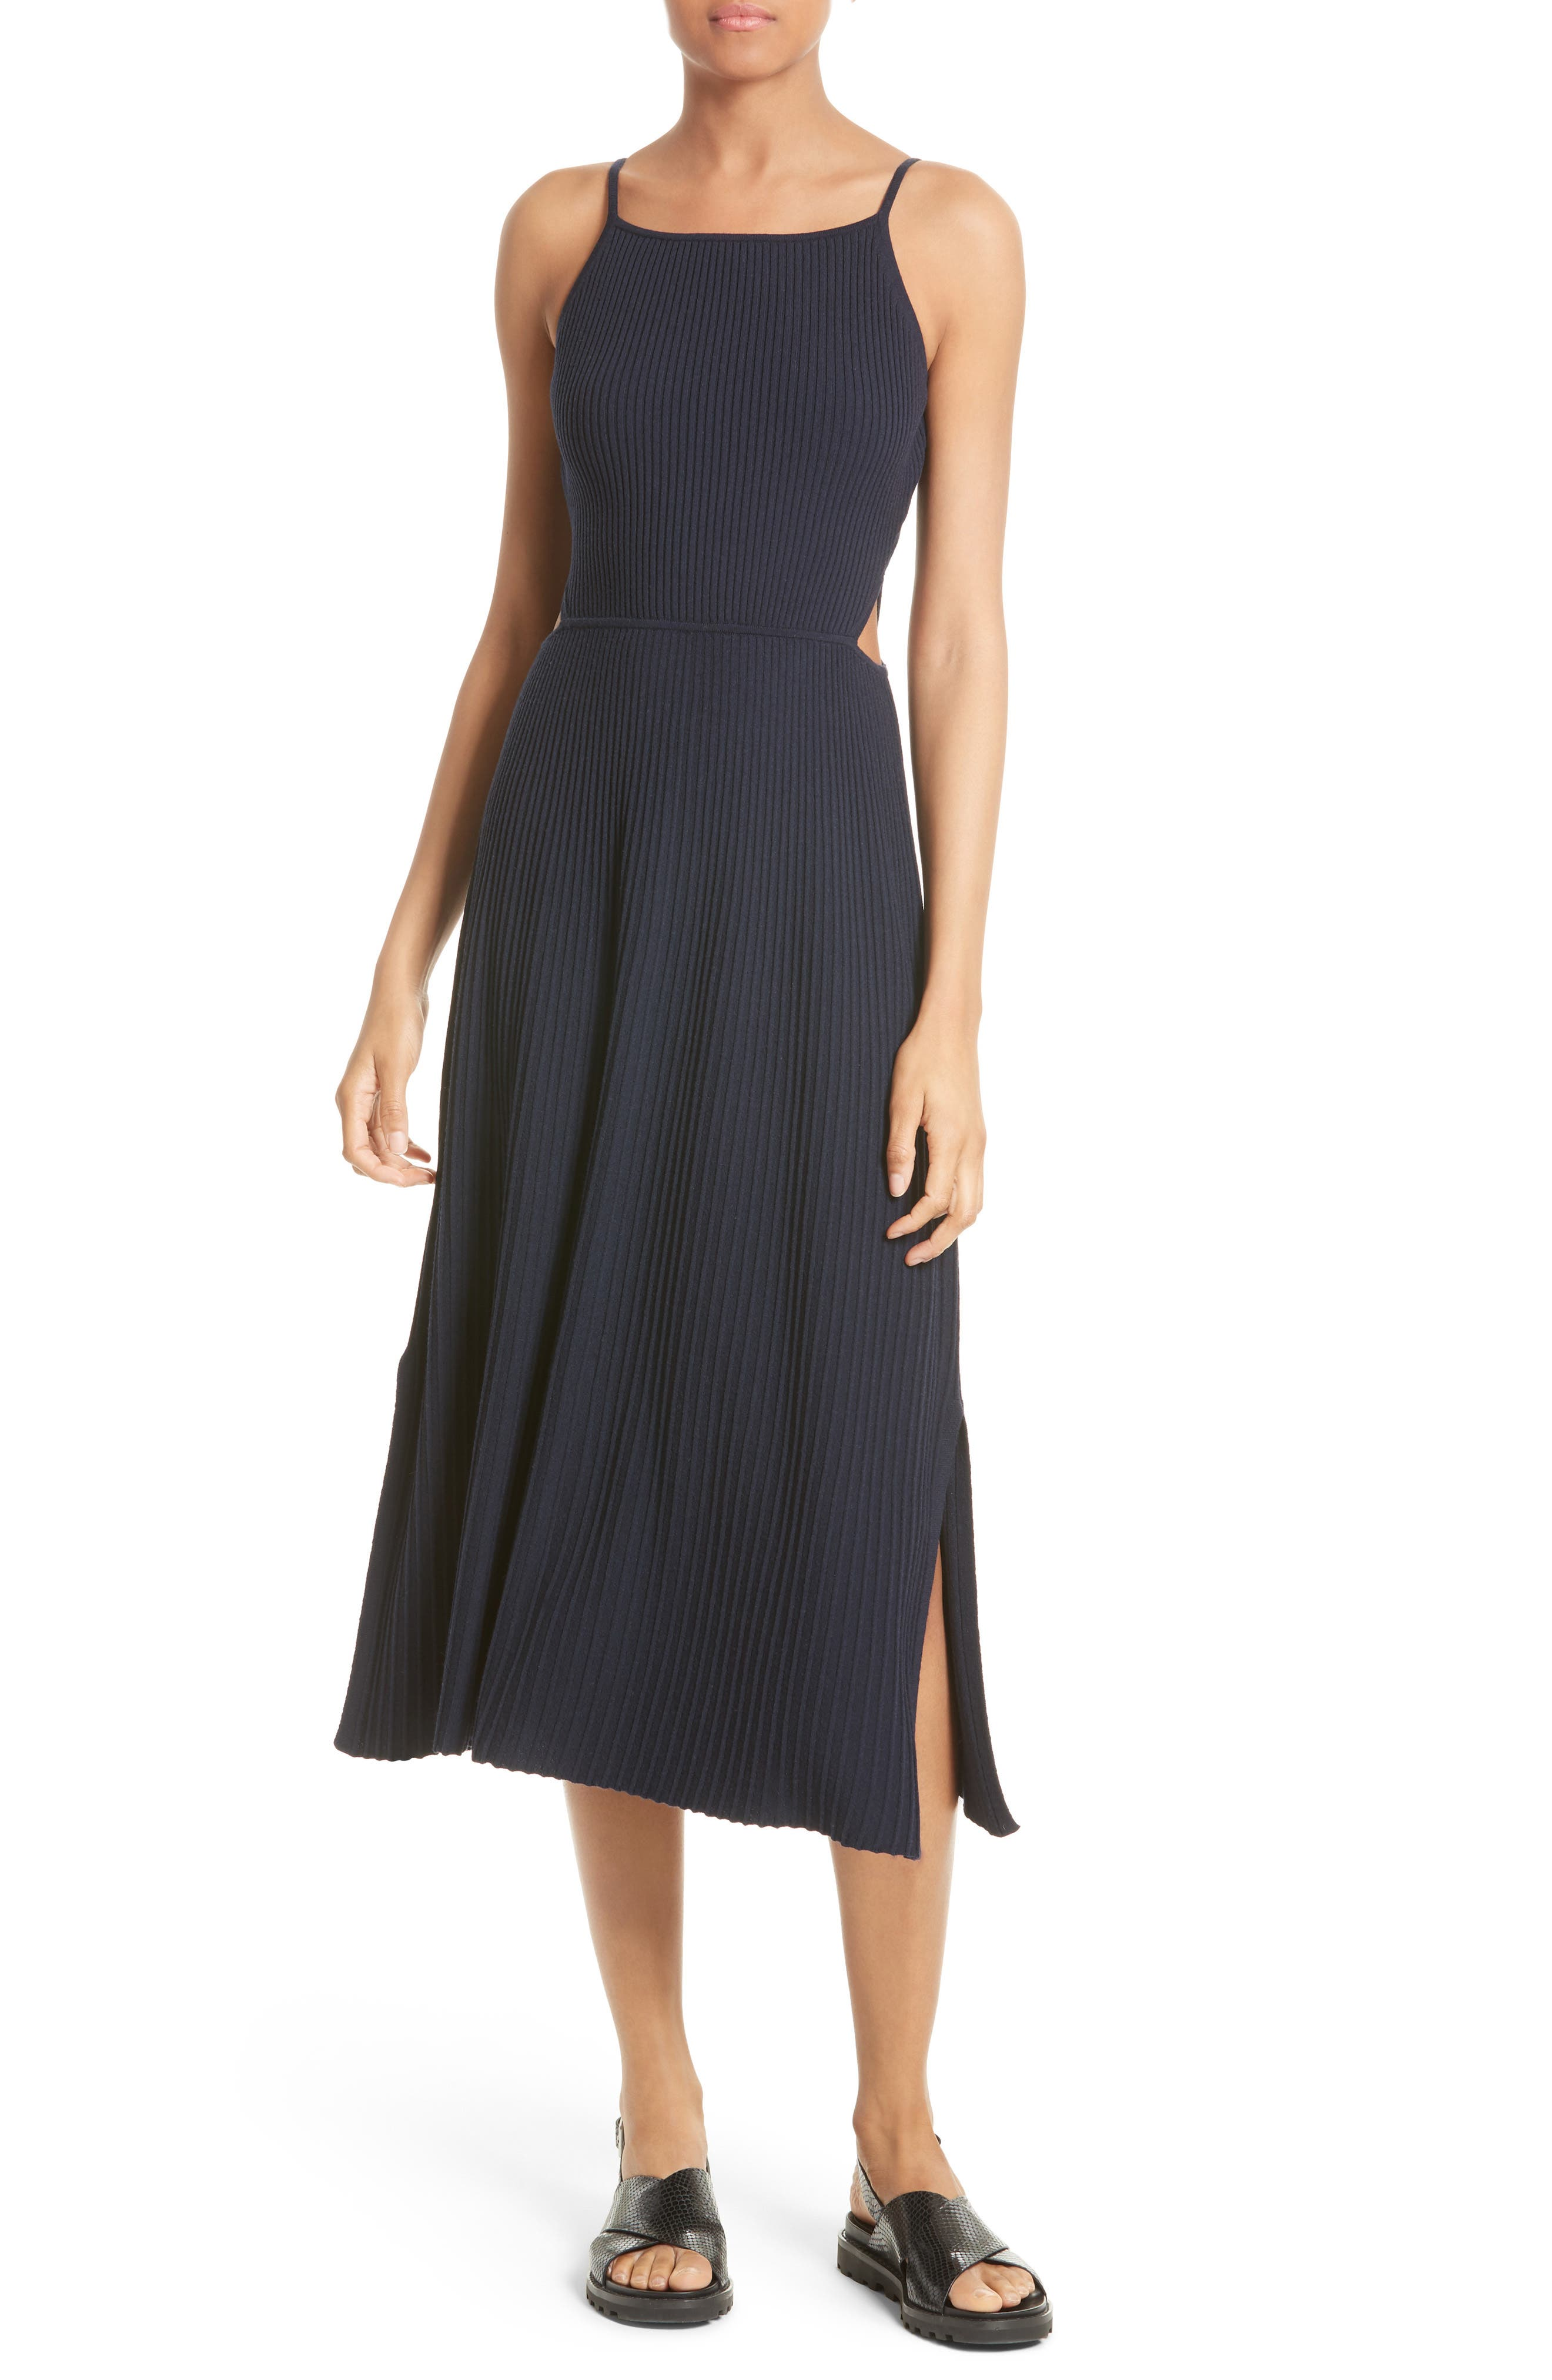 Elizabeth and James Josette Merino Wool Blend Apron Dress